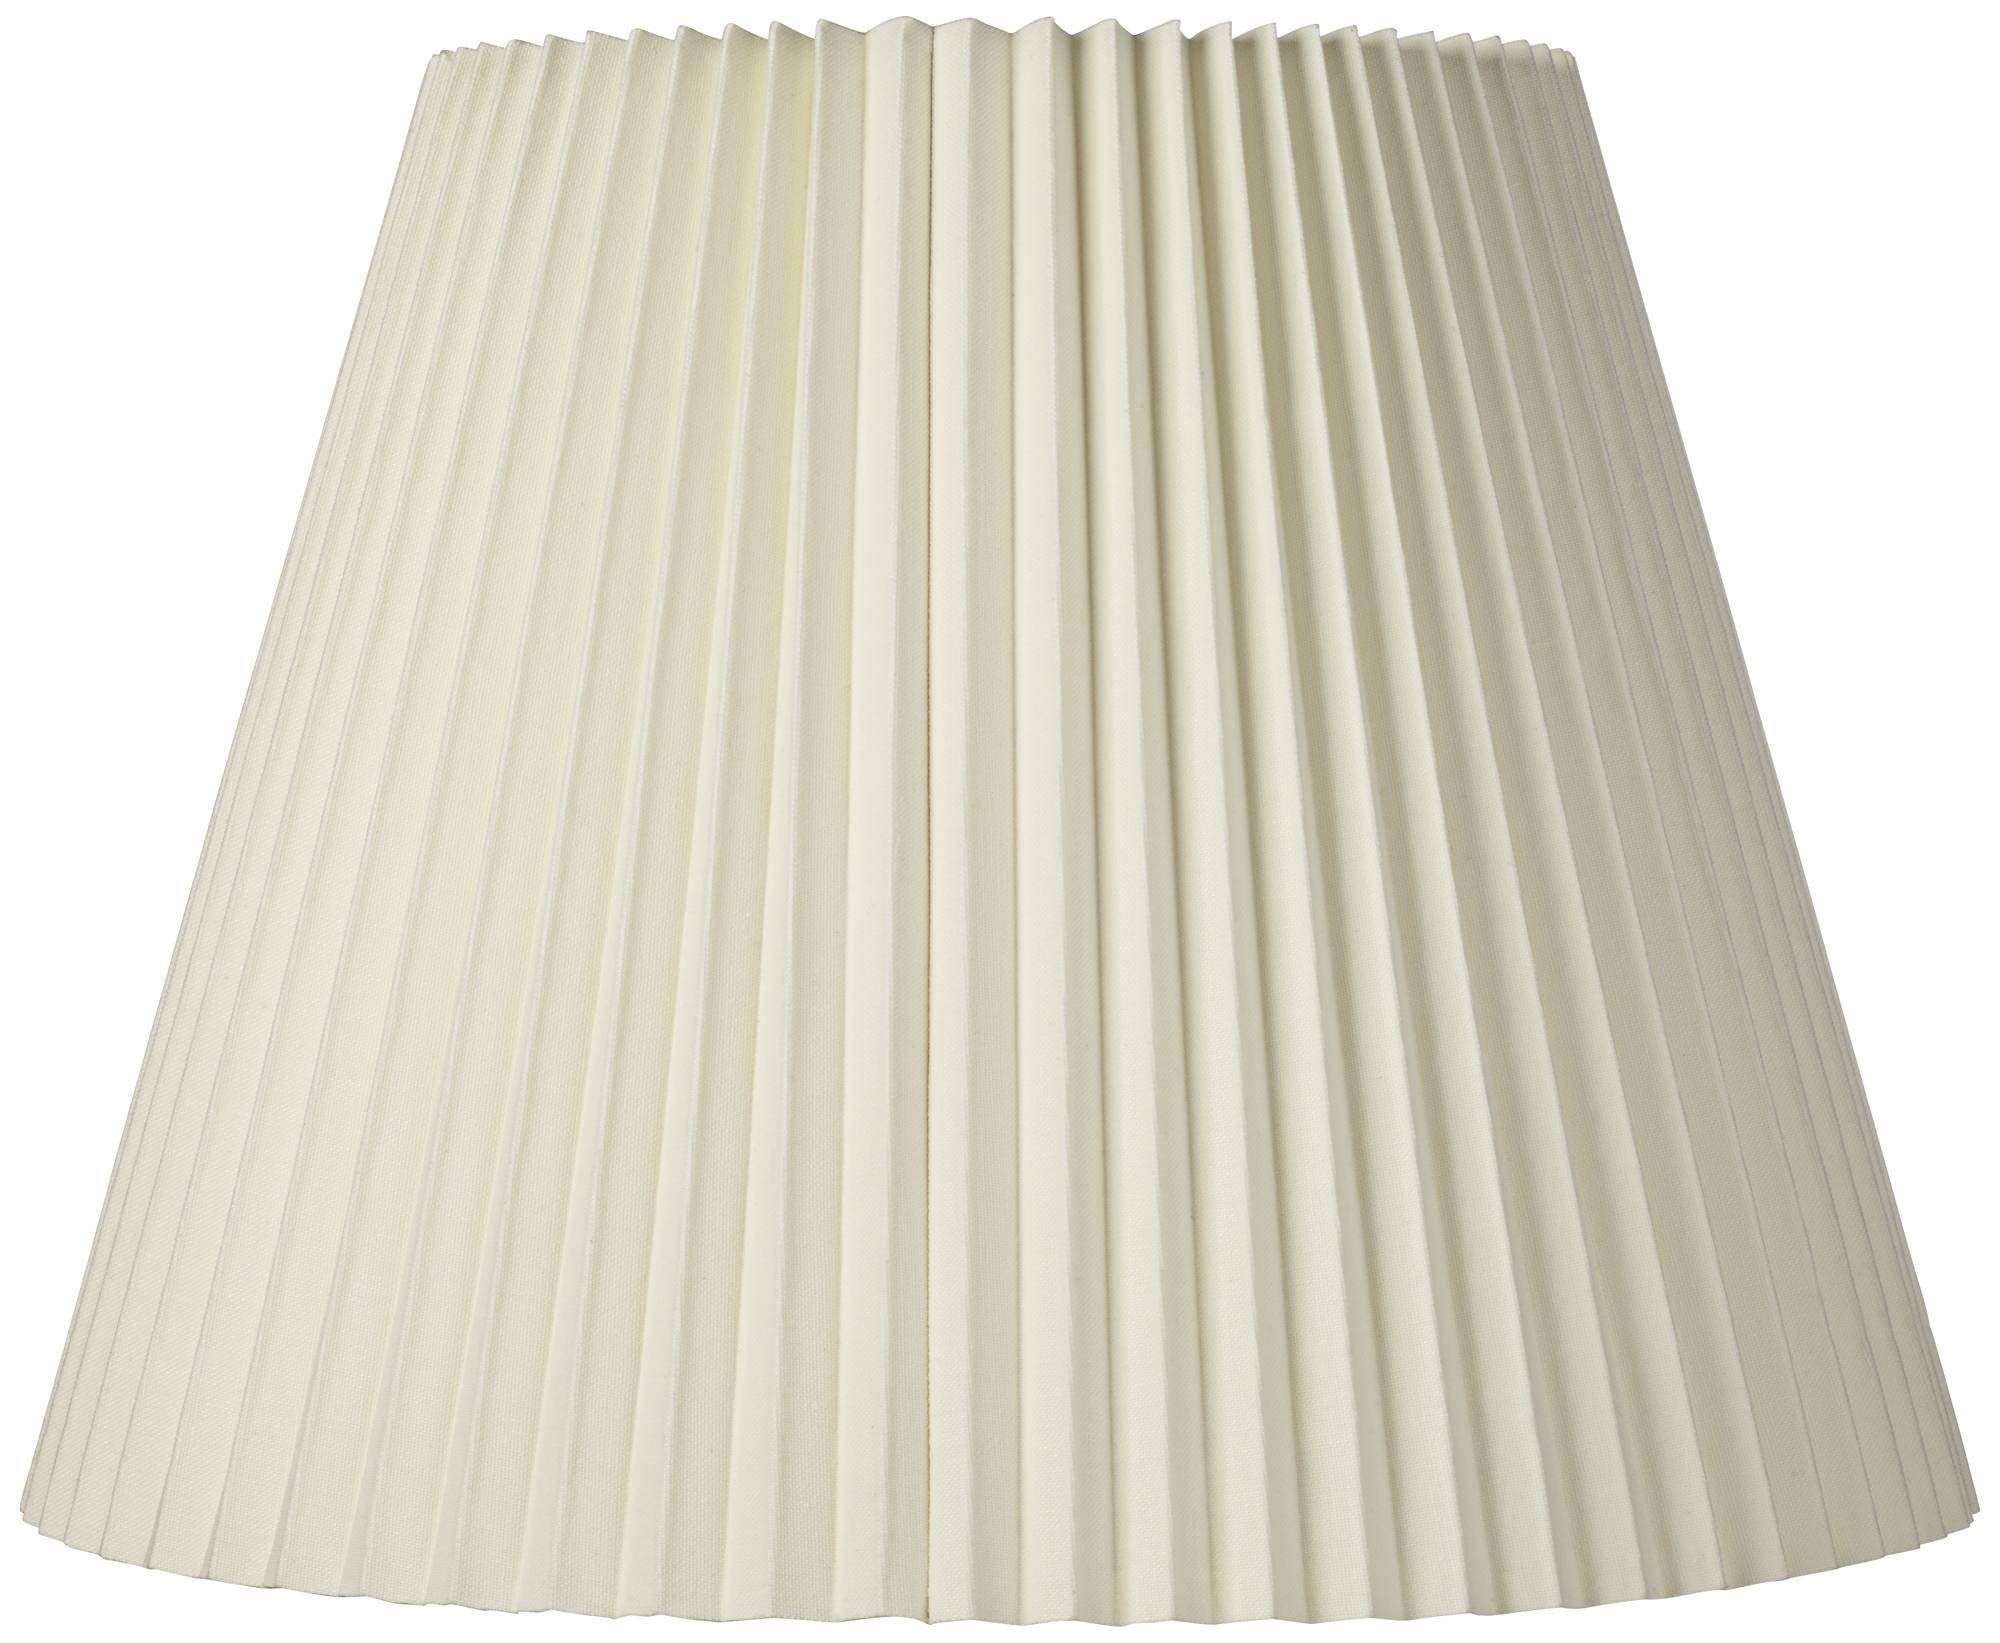 Ivory Pleated Shade 11x19x14.5 (Spider) - Brentwood